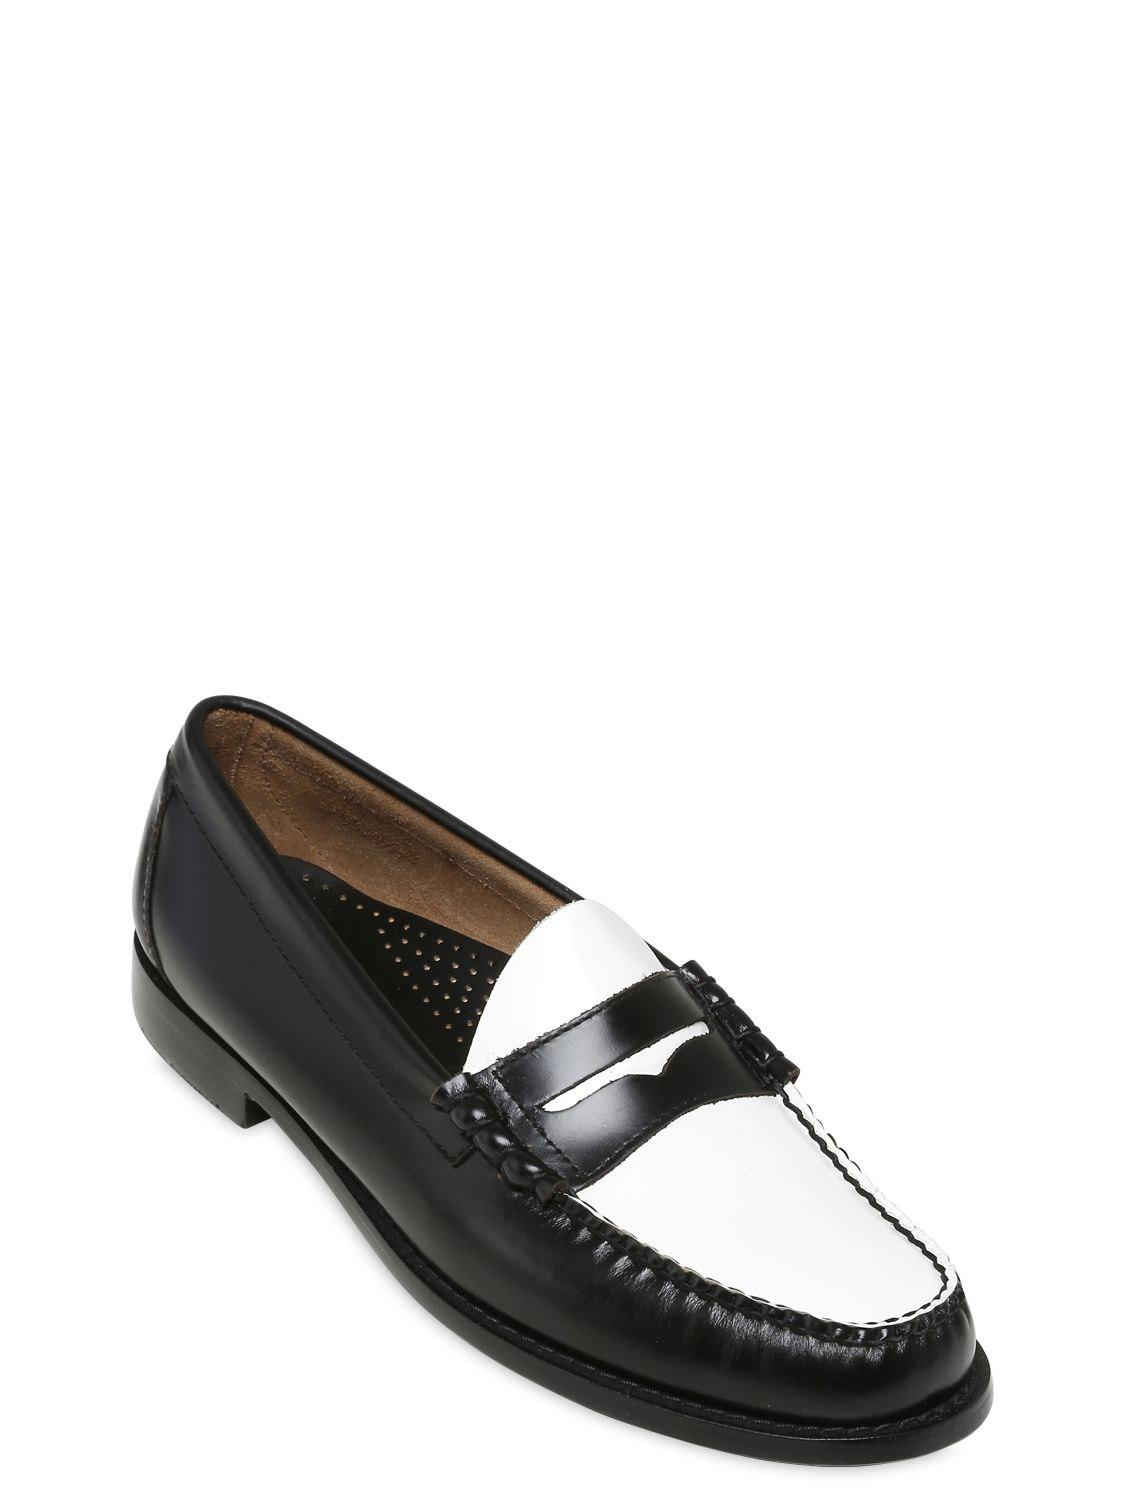 686f52b7edc Lyst - G.H.BASS Weejun Larson Penny Leather Loafers in Black for Men